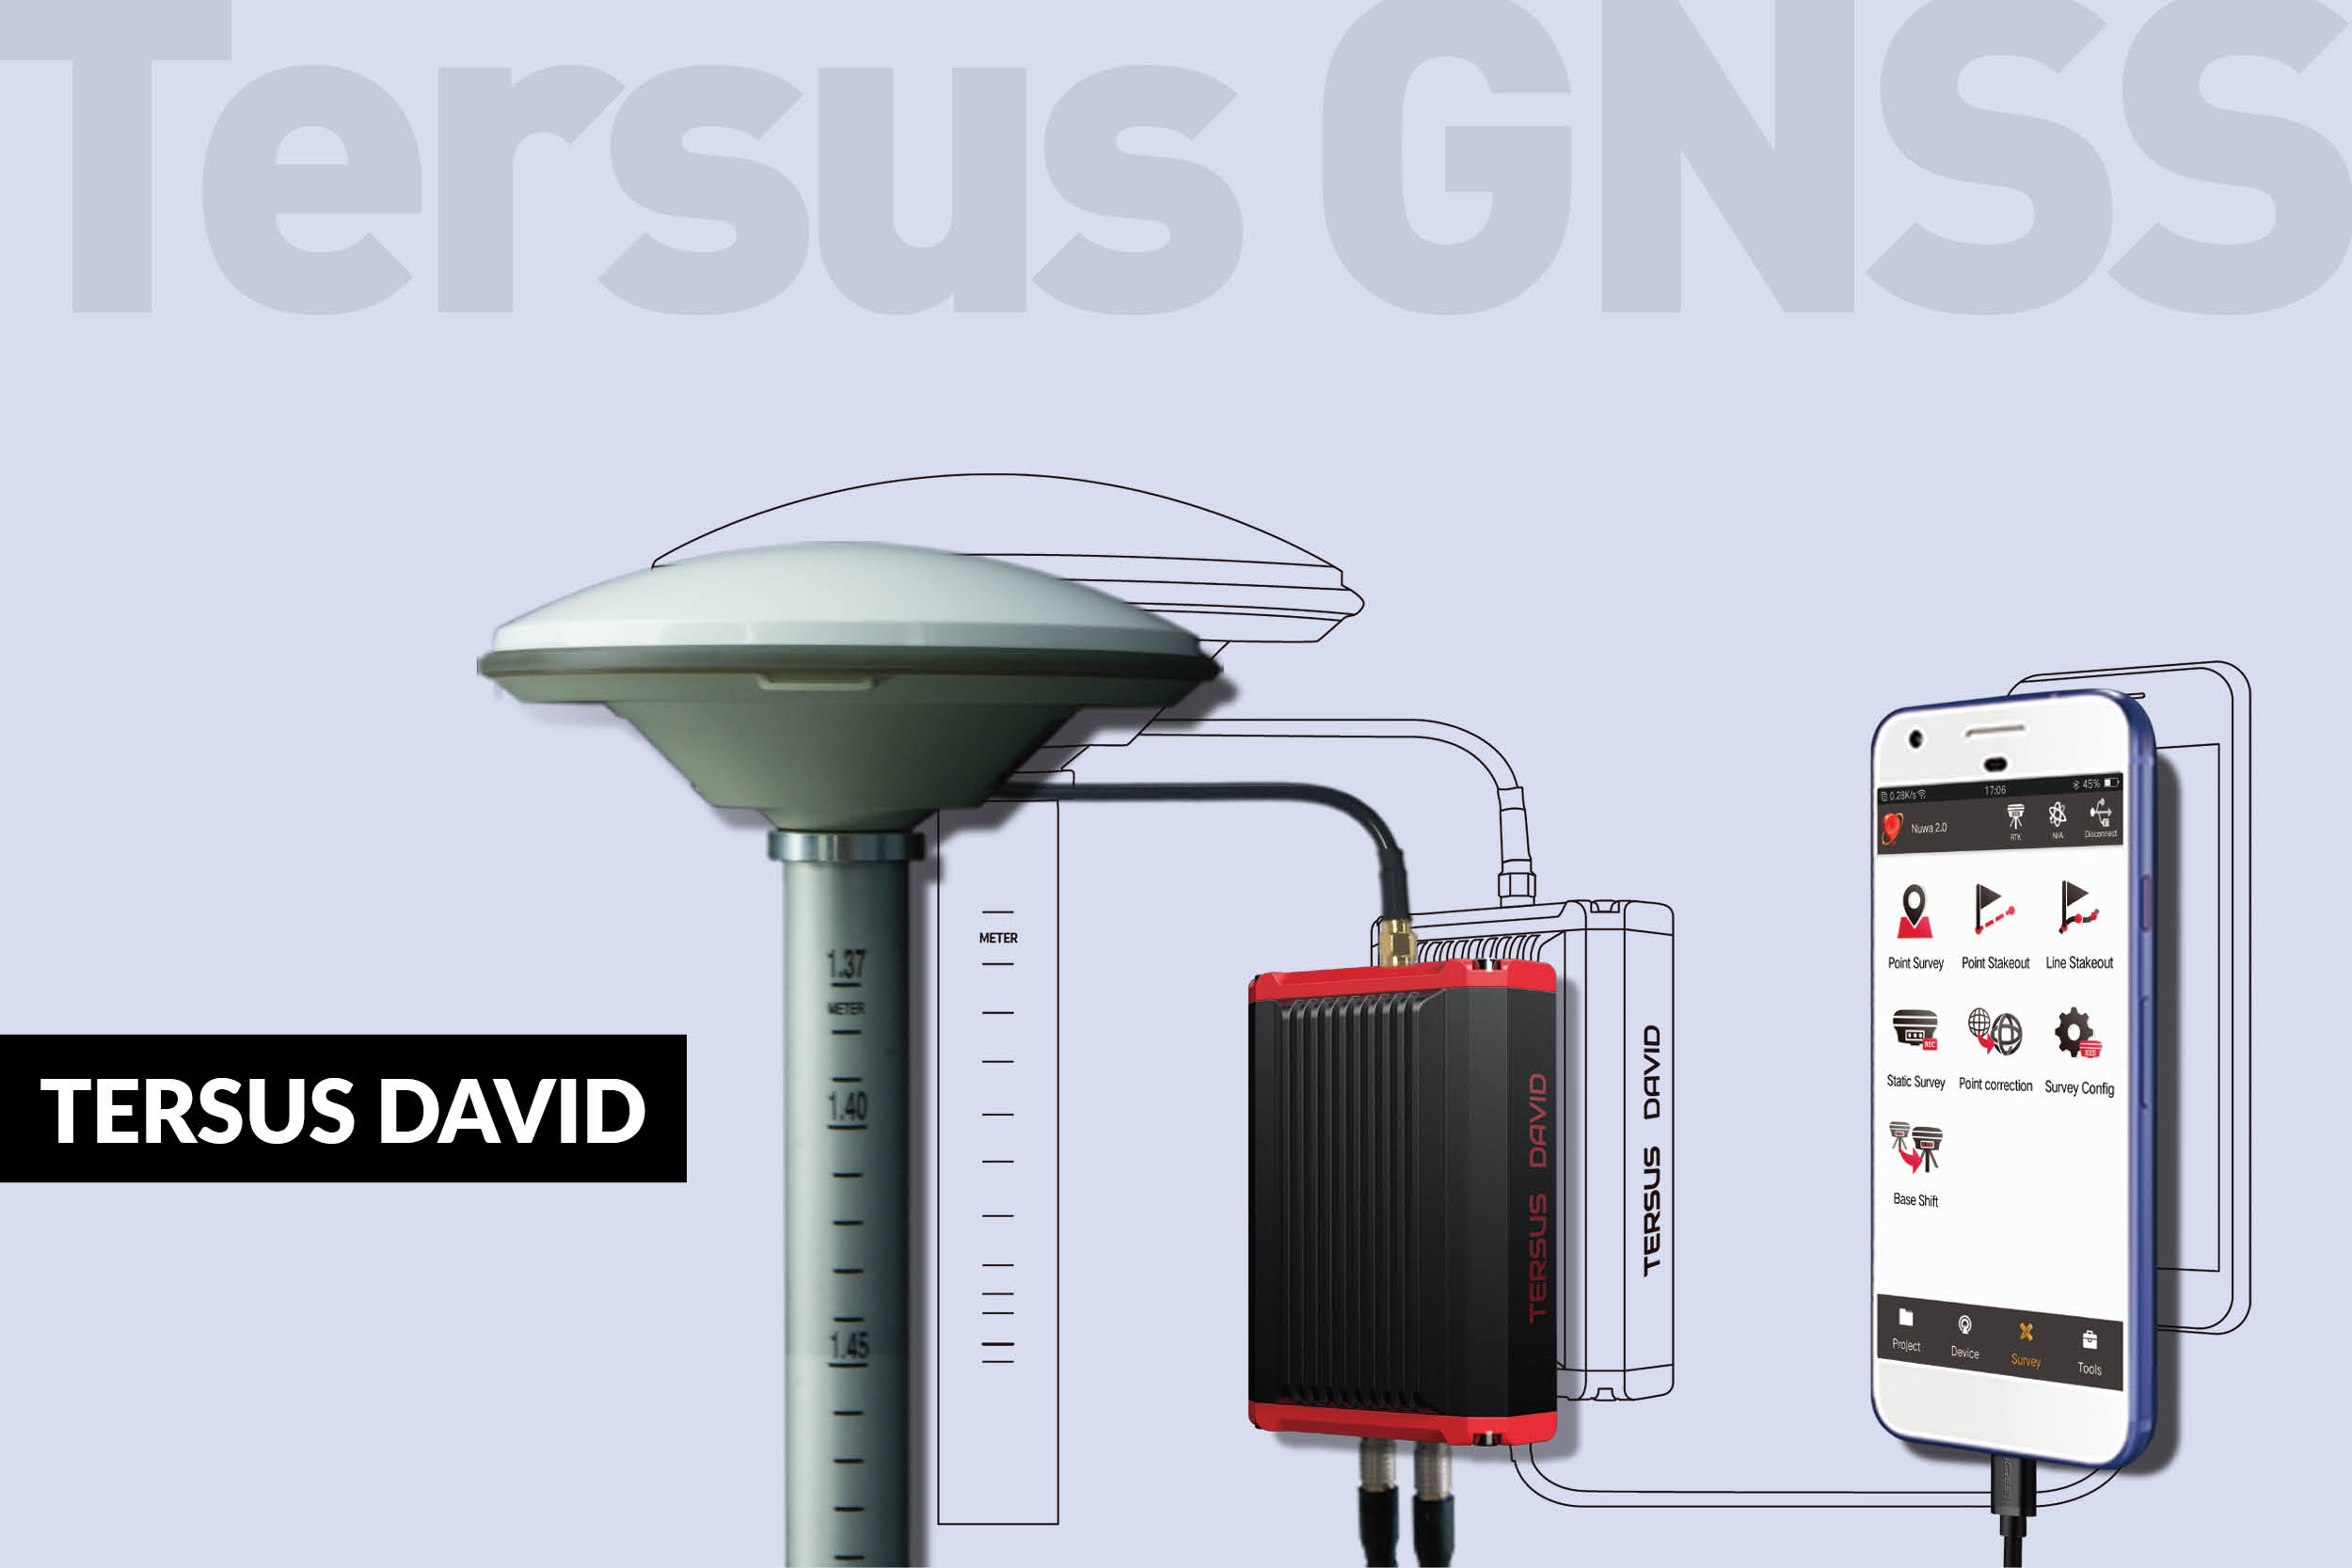 Tersus GNSS launches GNSS receiver Tersus David designed for